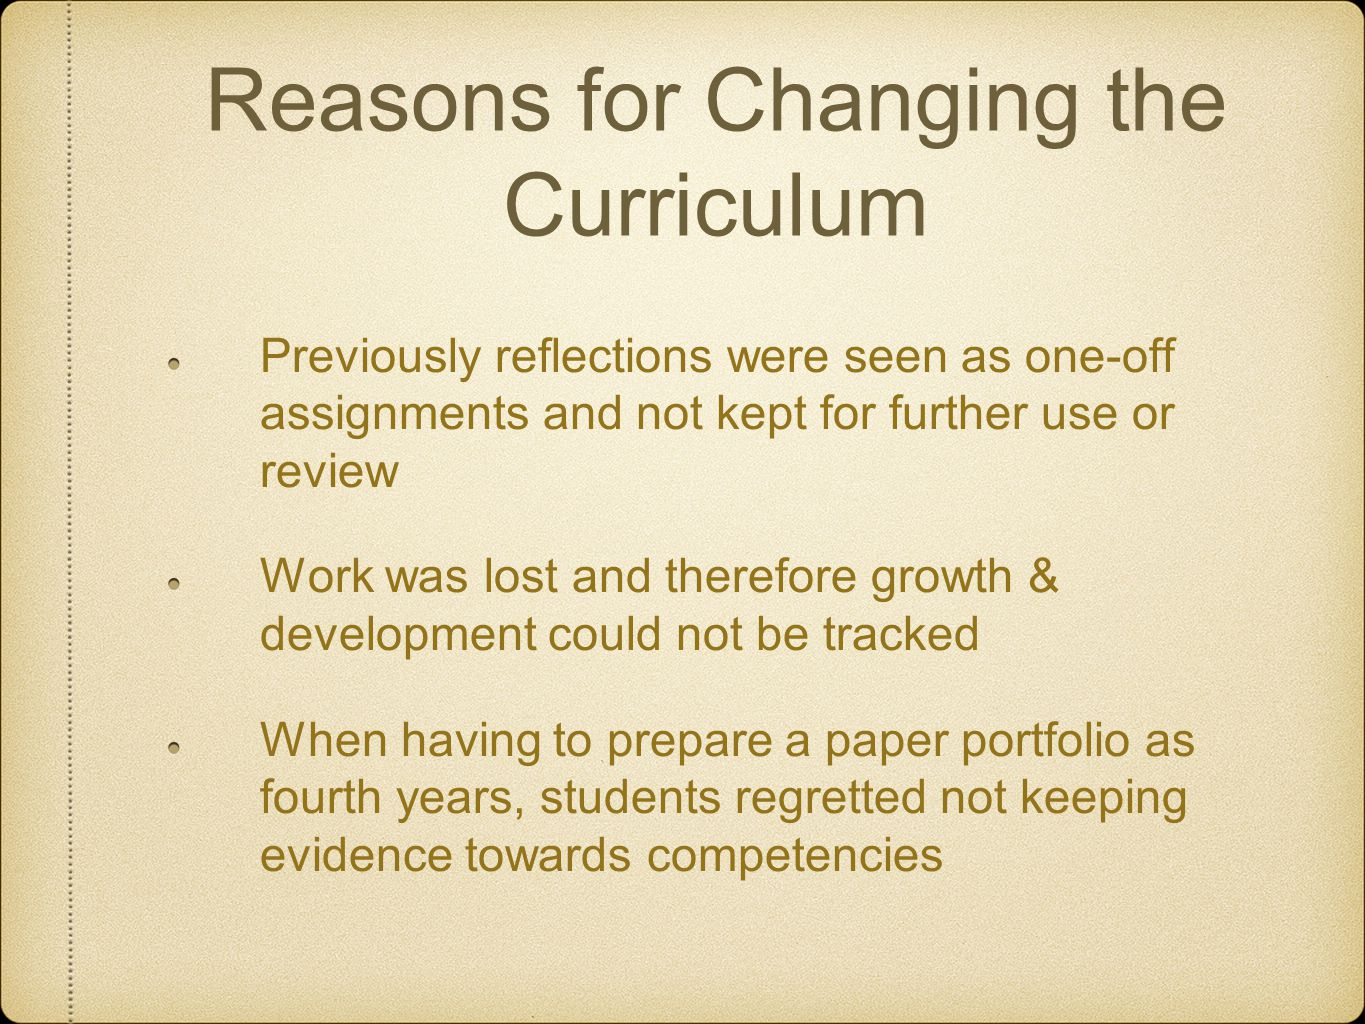 Reasons for Changing the Curriculum